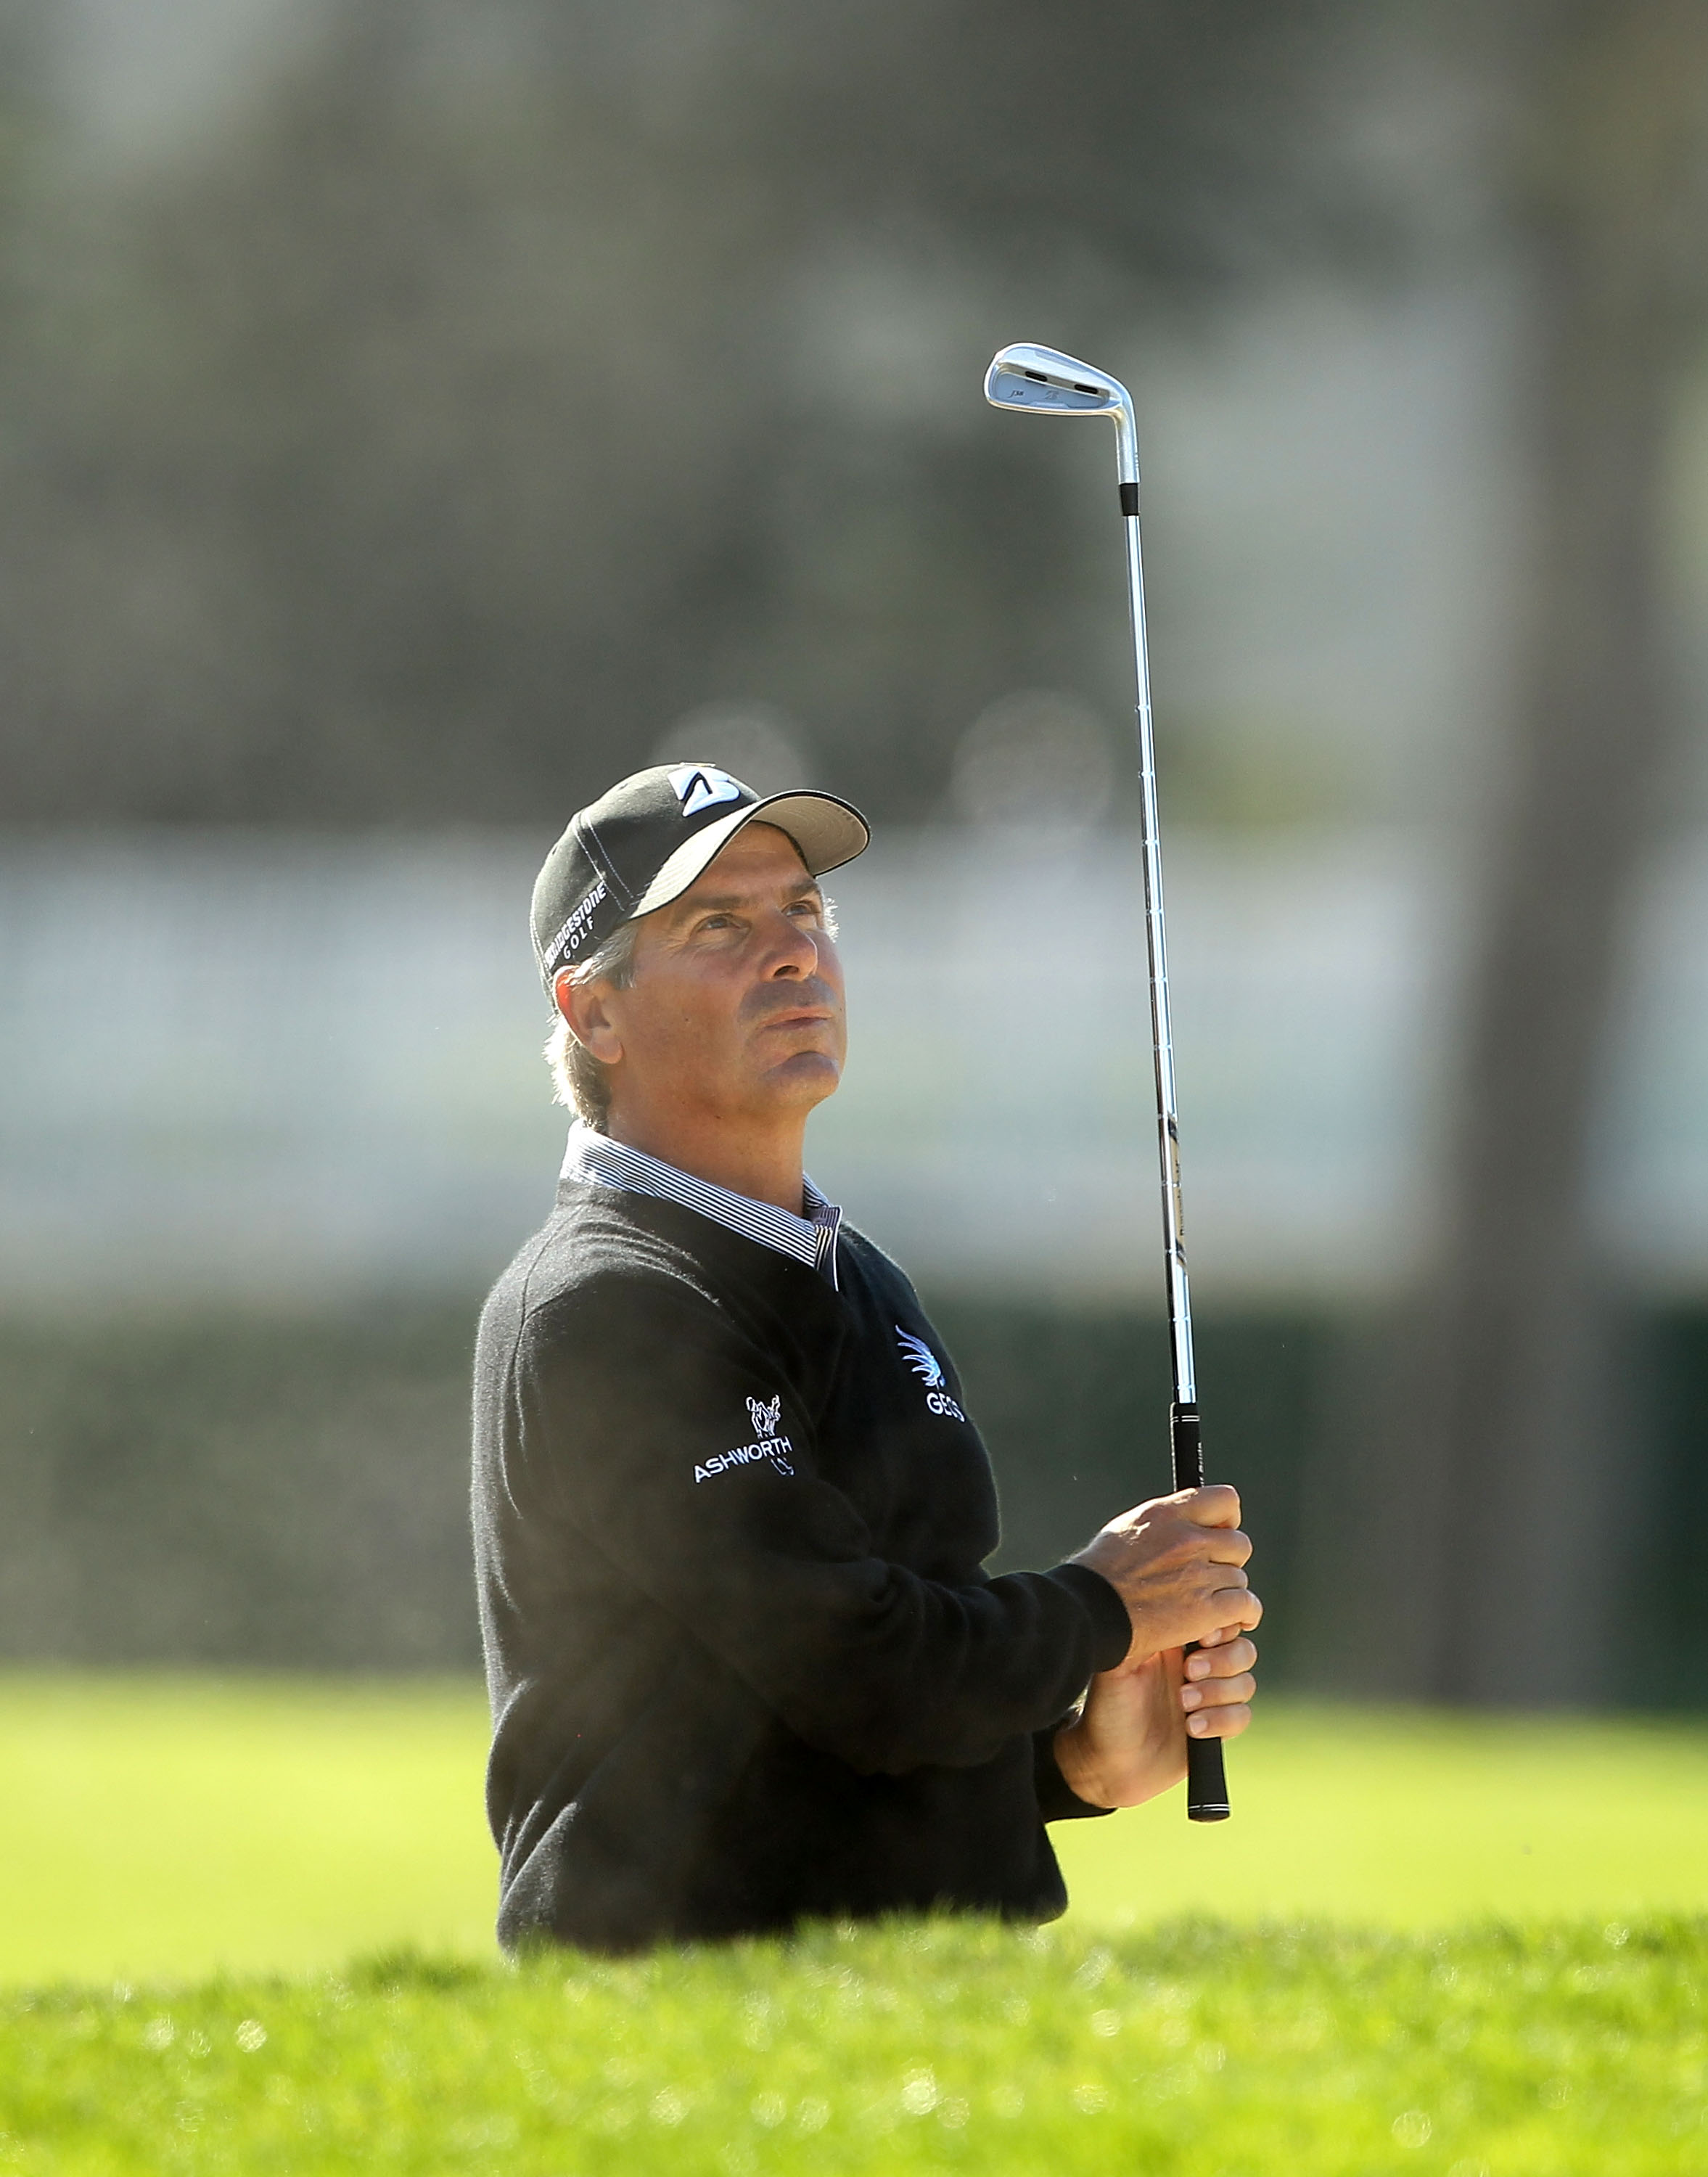 SAN FRANCISCO - NOVEMBER 06:  Fred Couples plays in round 3 of the Charles Schwab Cup Championship at Harding Park Golf Course on November 6, 2010 in San Francisco, California.  (Photo by Ezra Shaw/Getty Images)